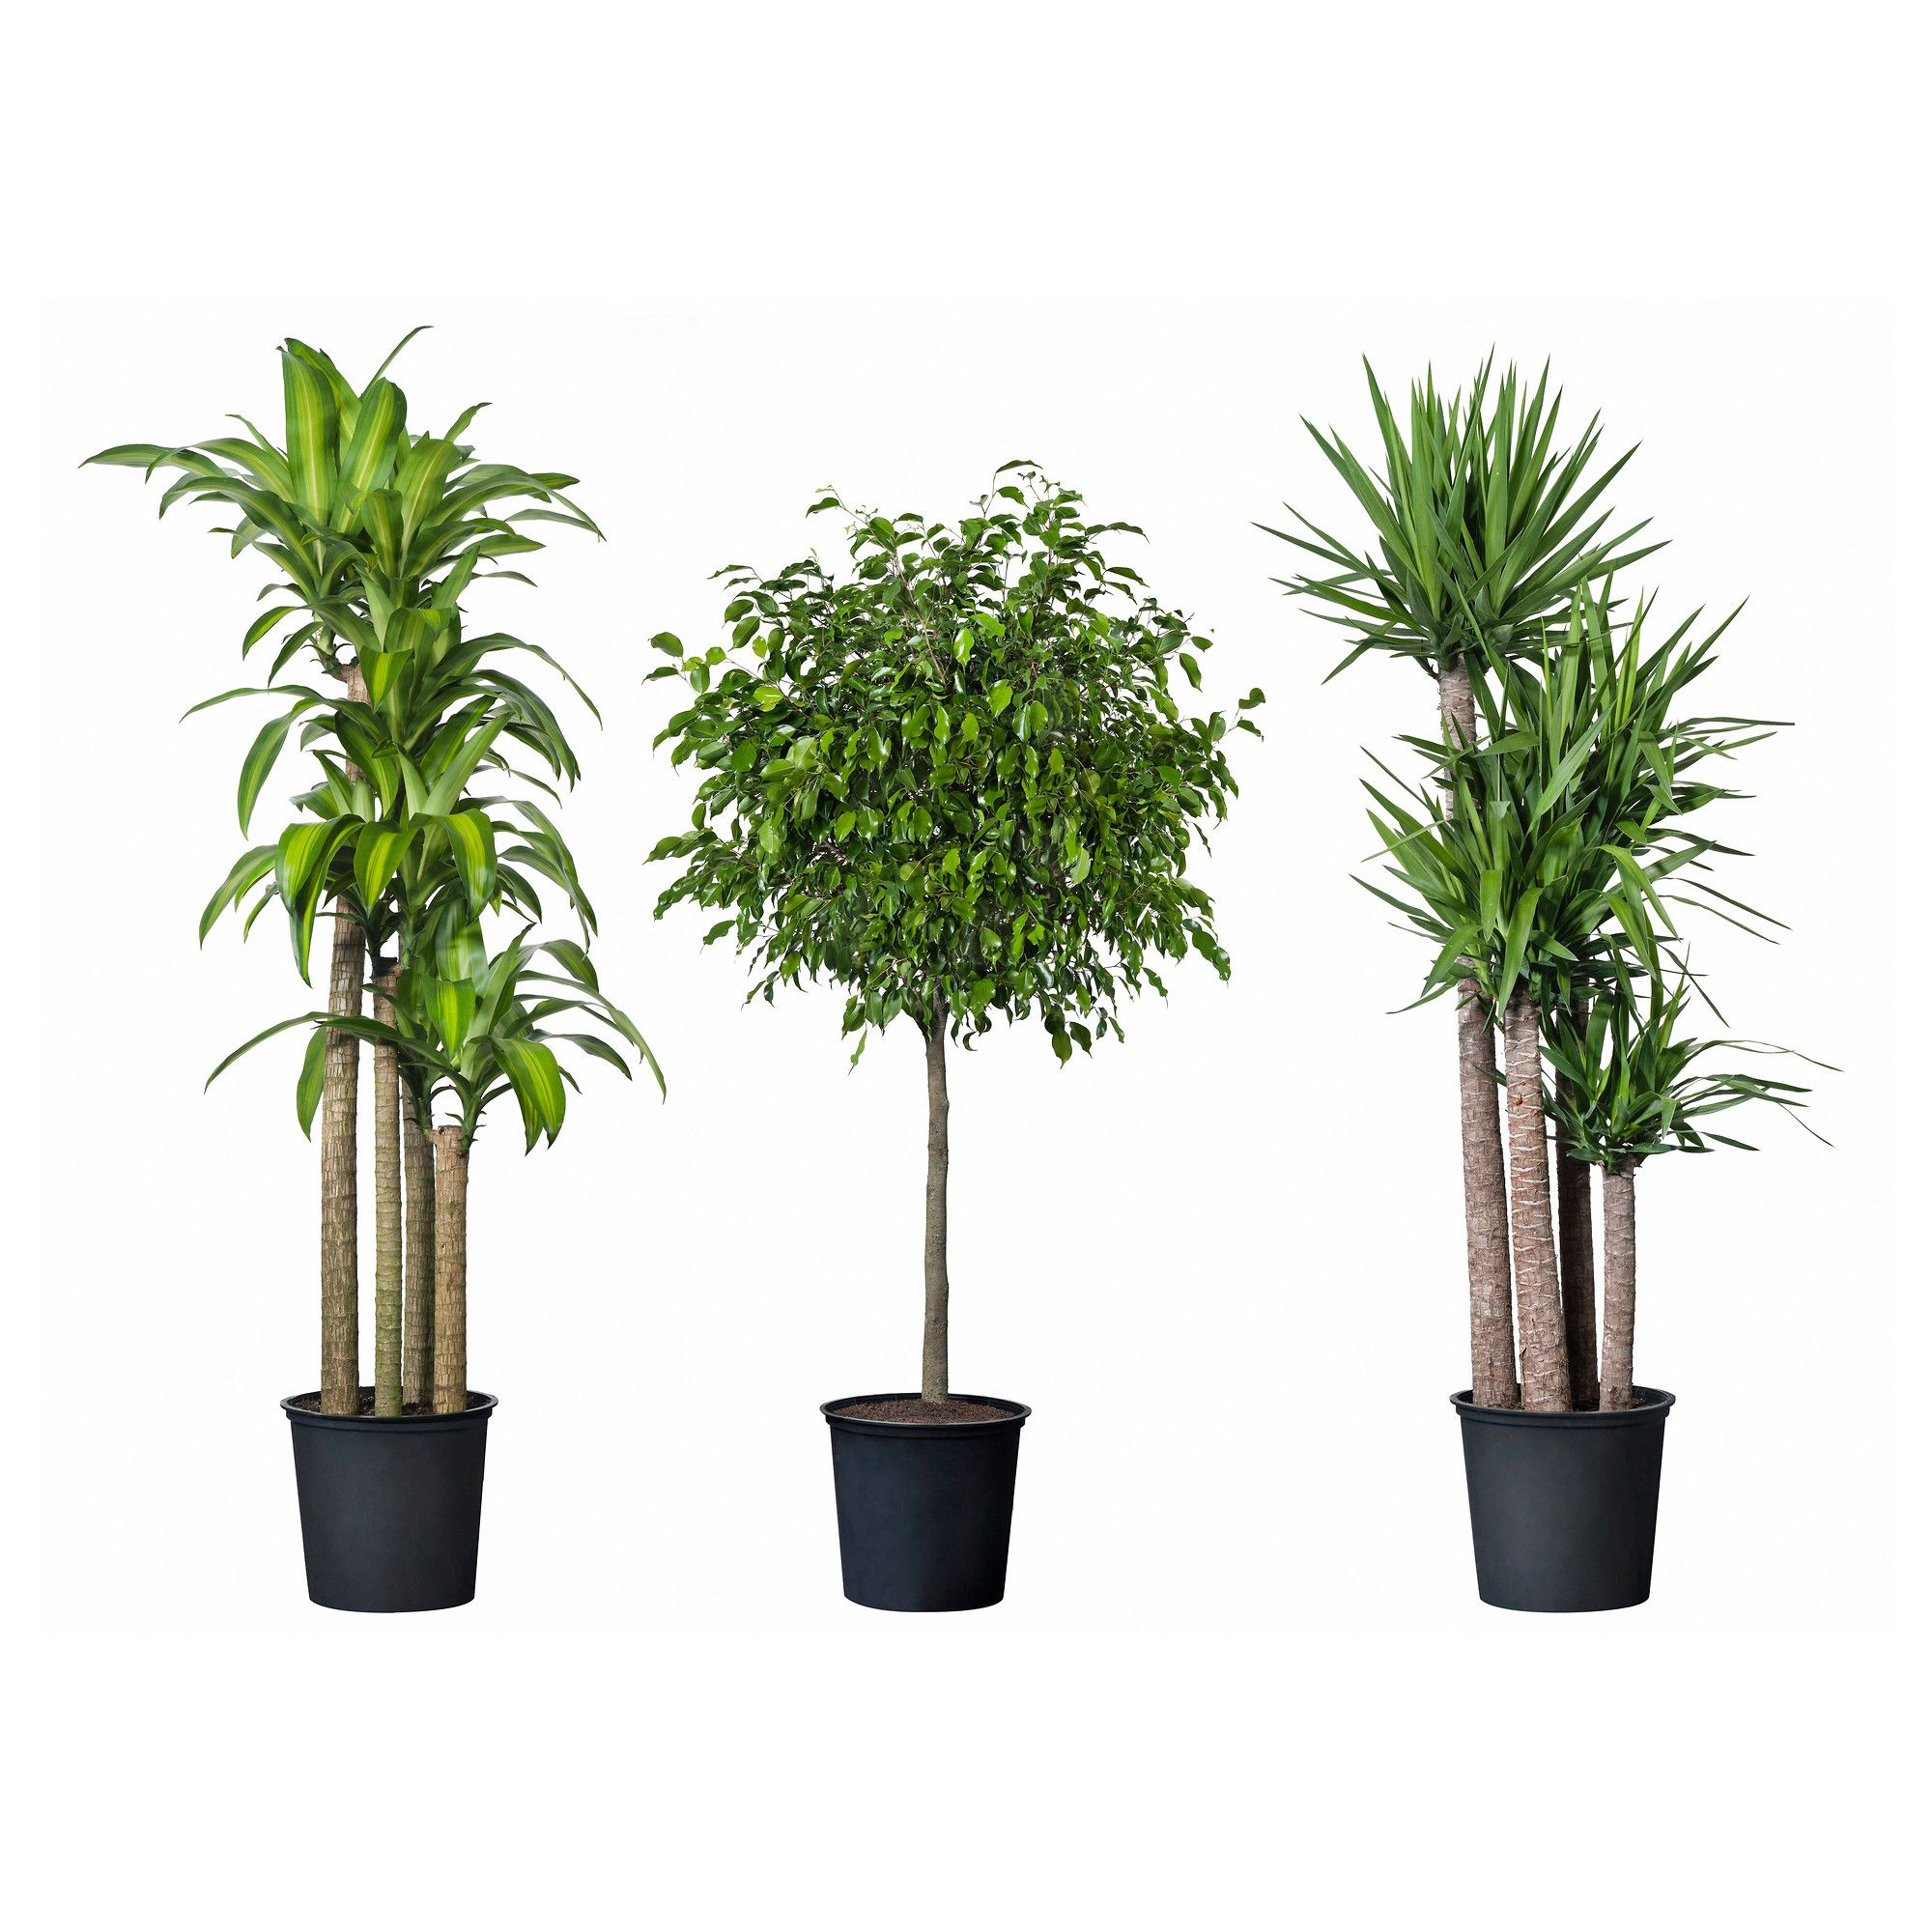 Tropisk Potted Plant Tropical Orted Species Plants Tall Indoor